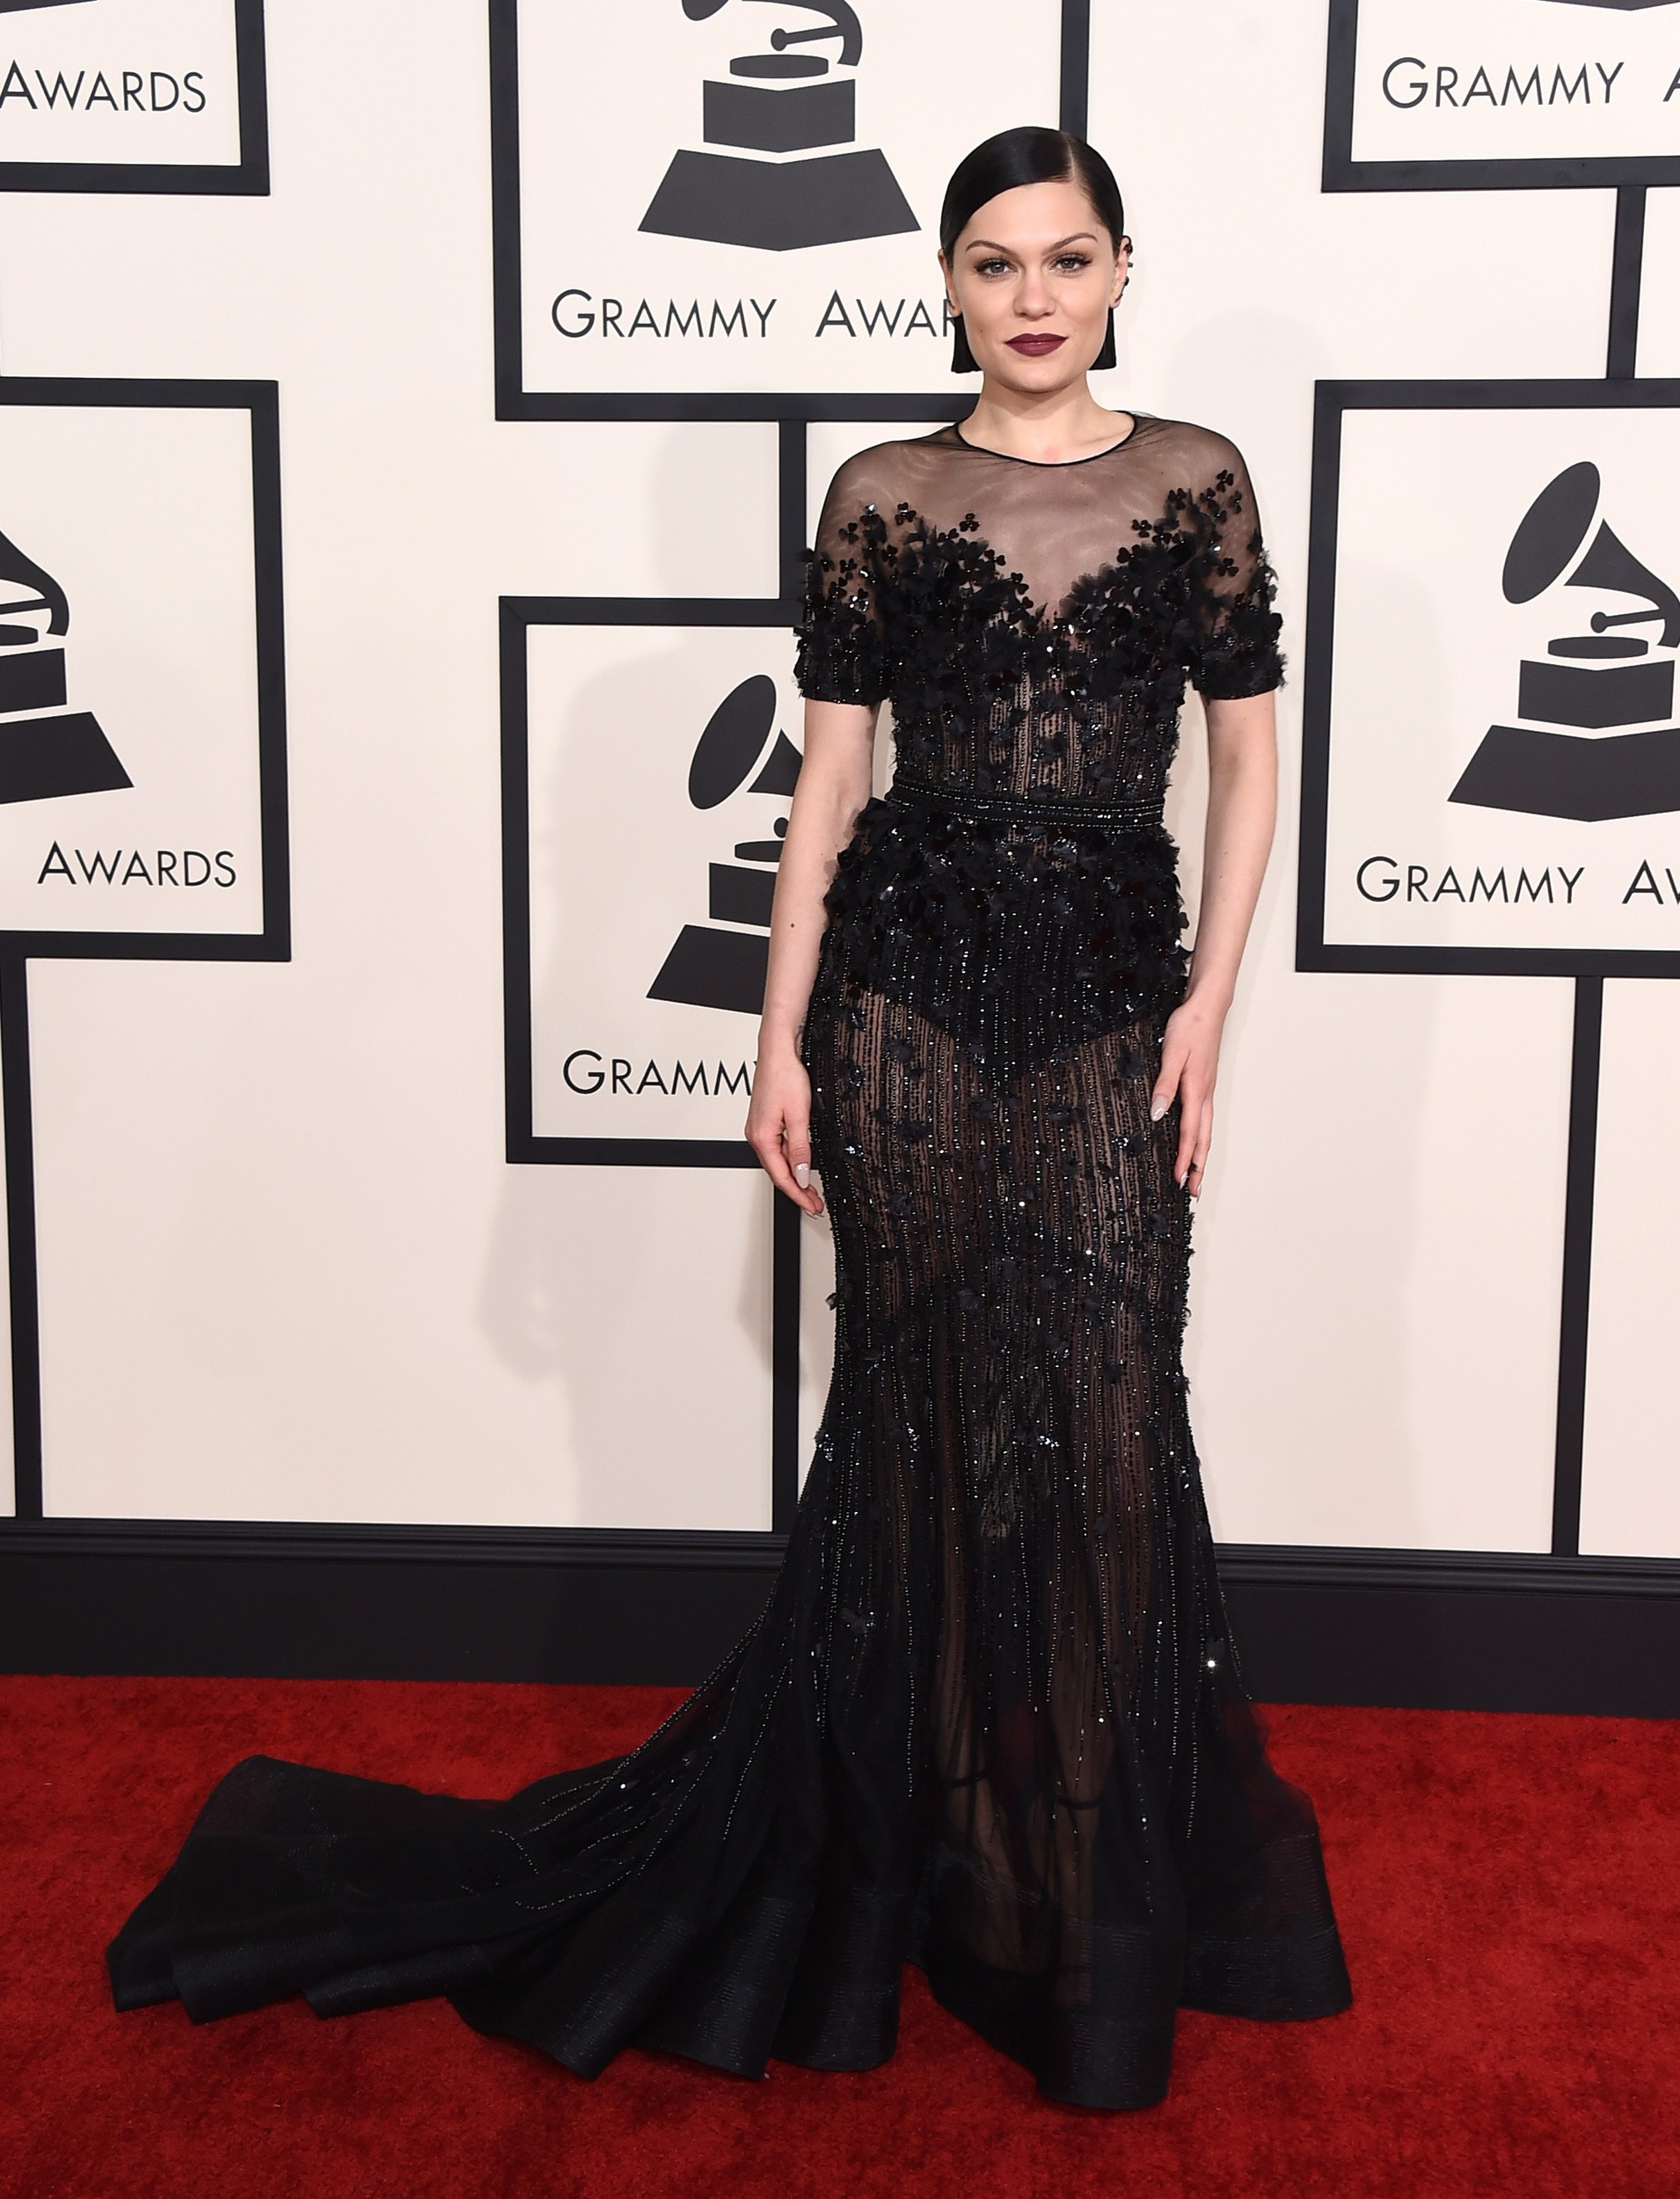 the-57th-annual-grammy-awards-arrivals-1